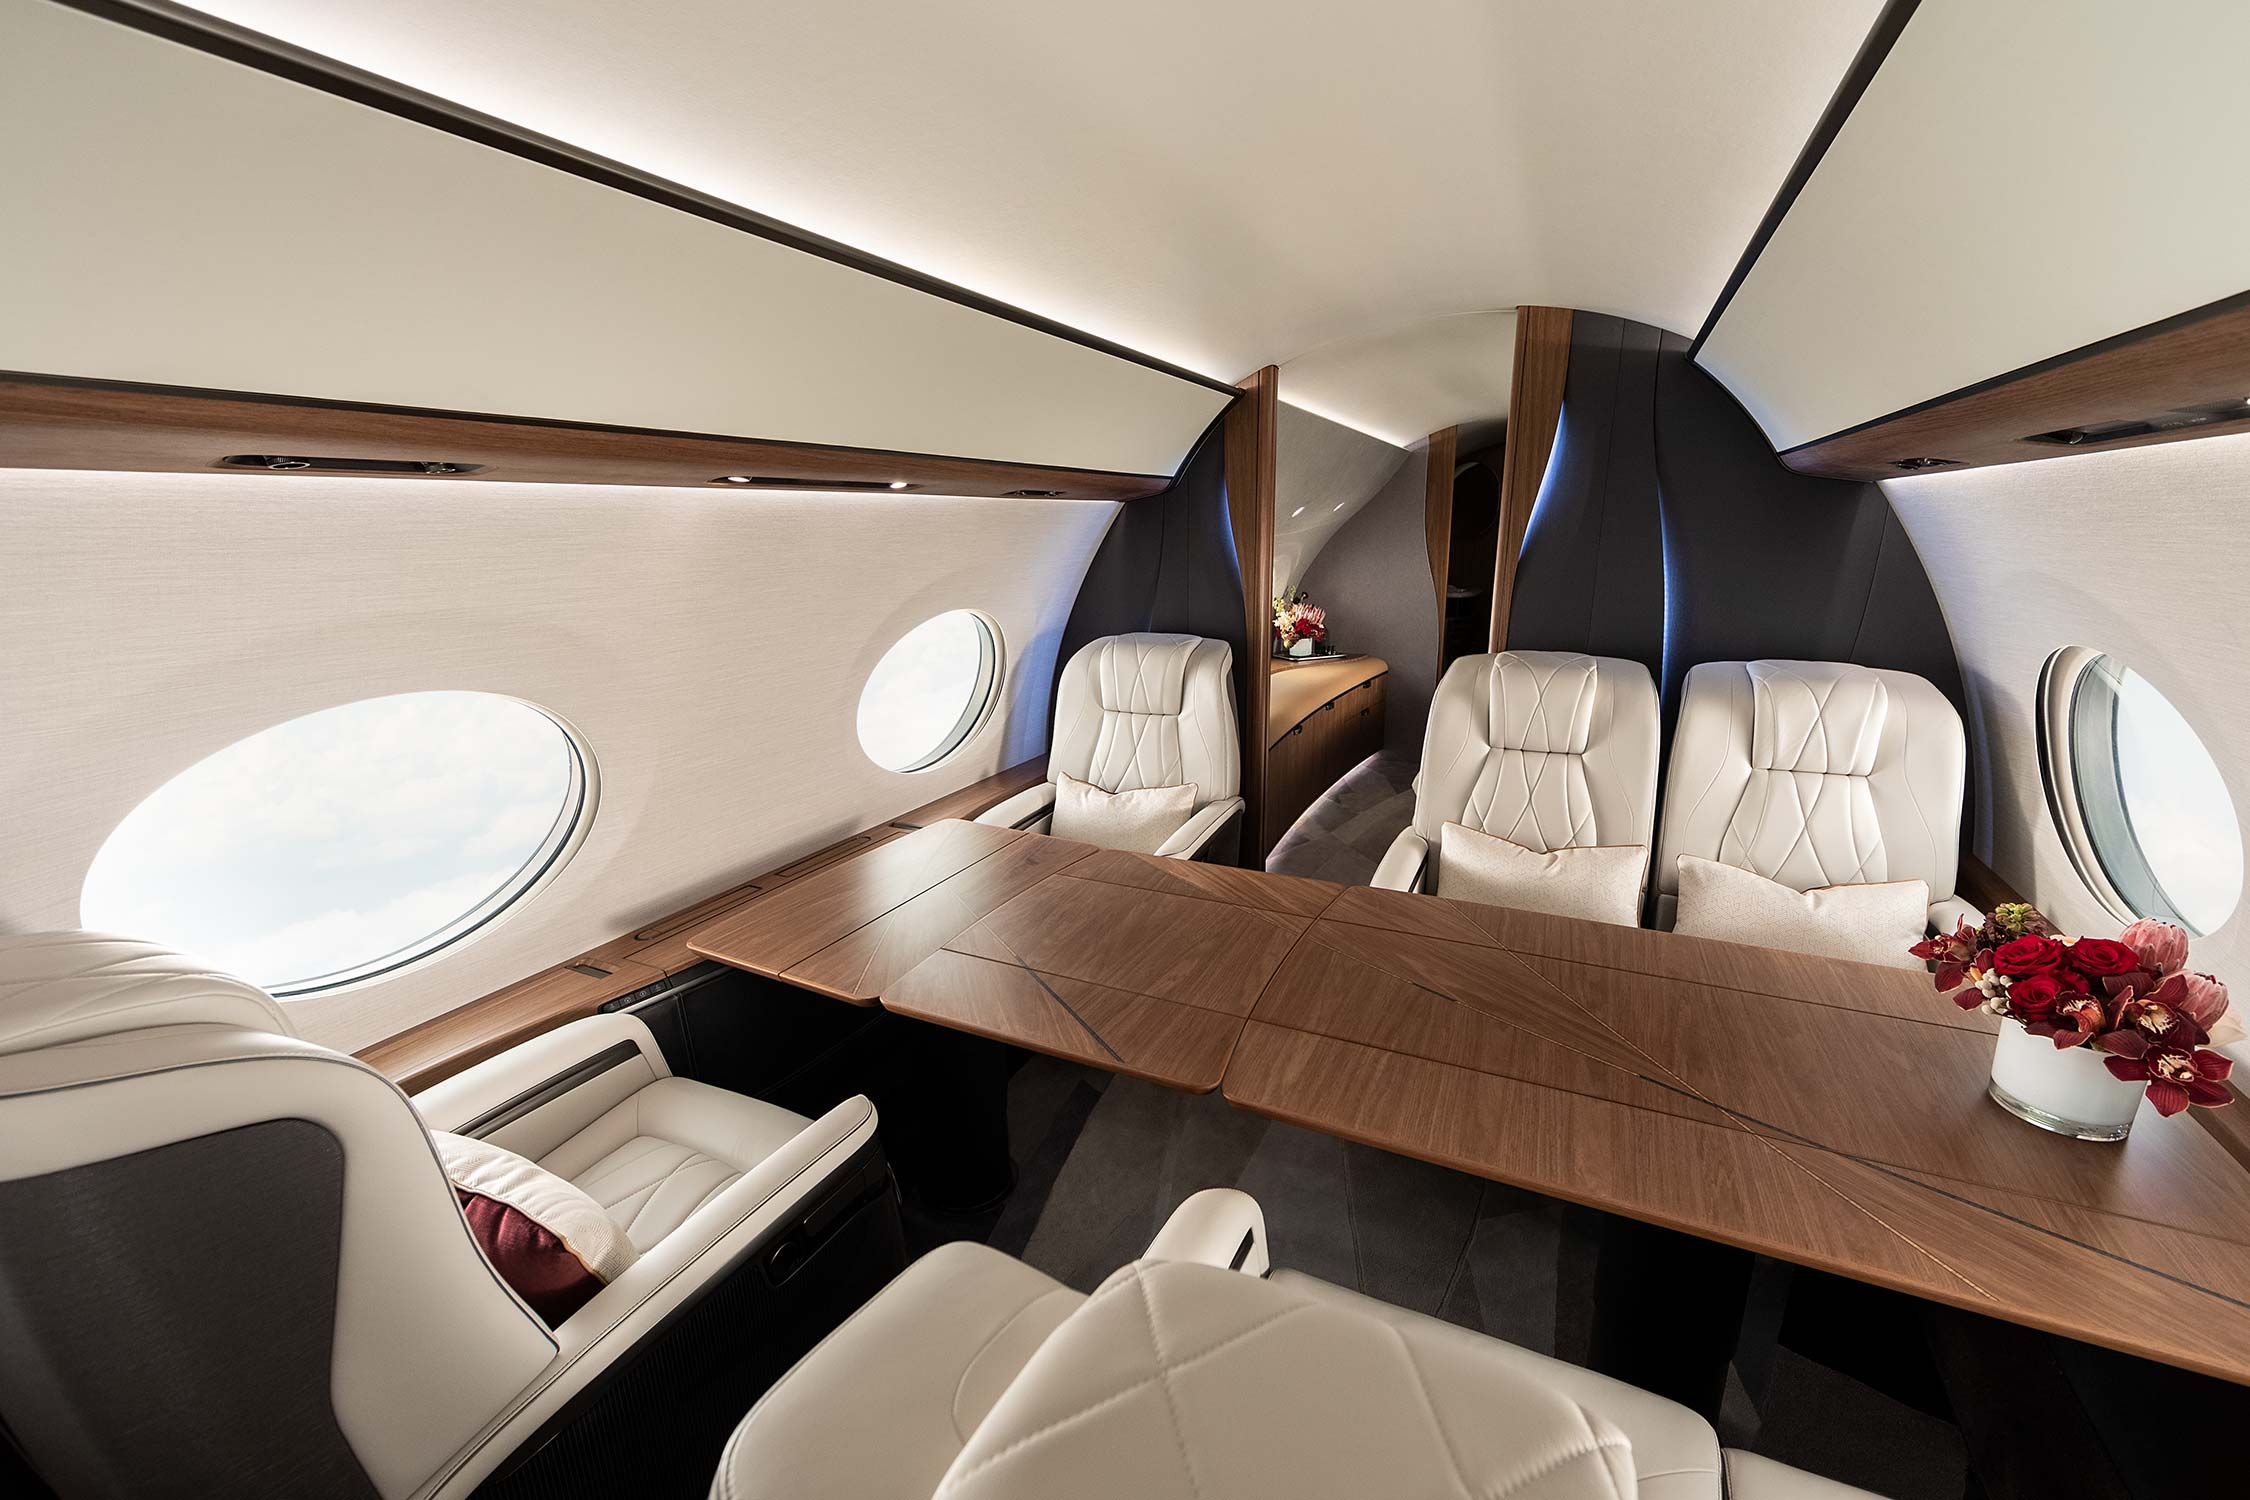 Conference table with six leather seats in a private airplane